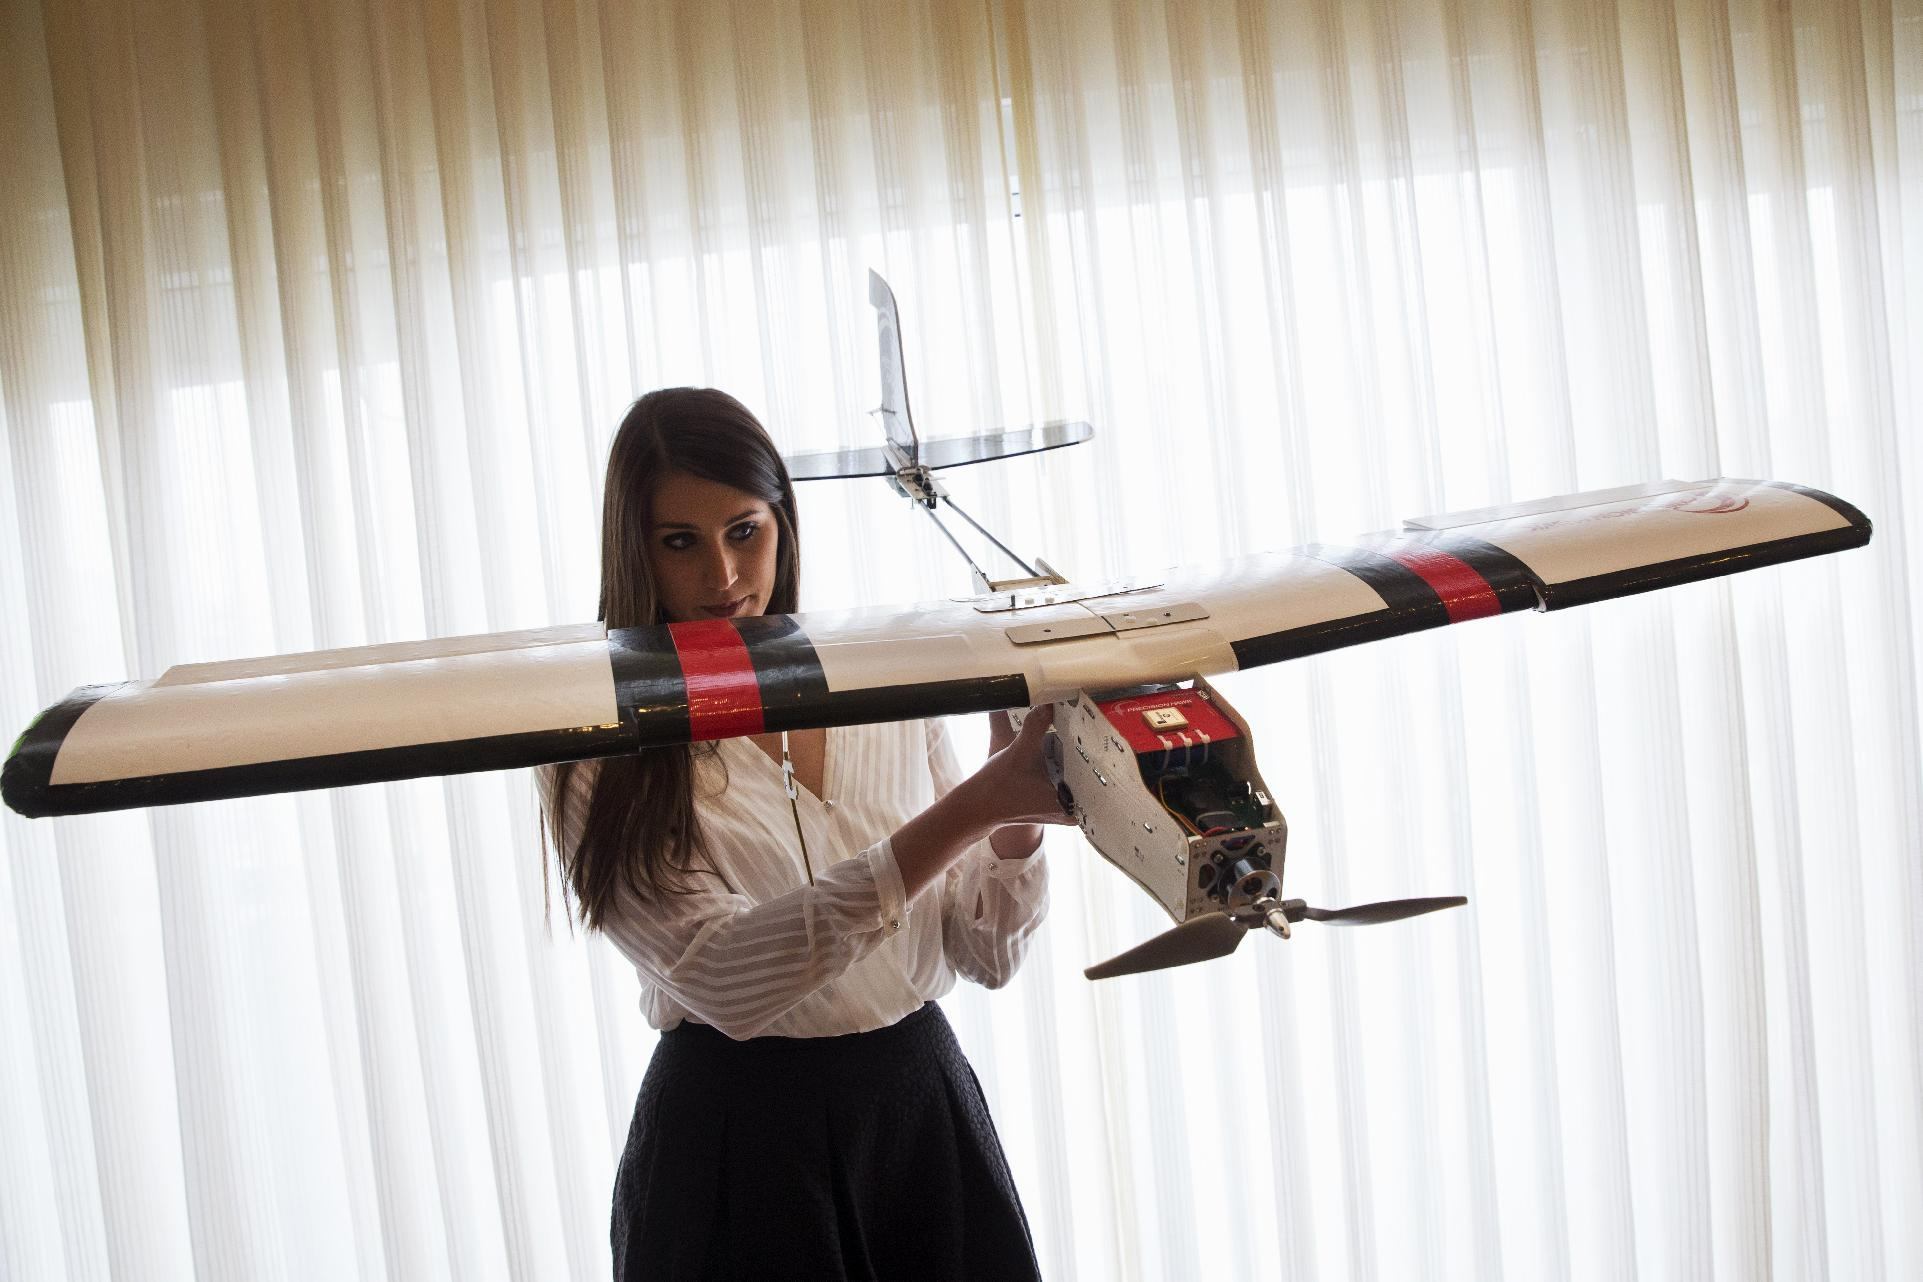 Unmanned drones could play key roles in food supply